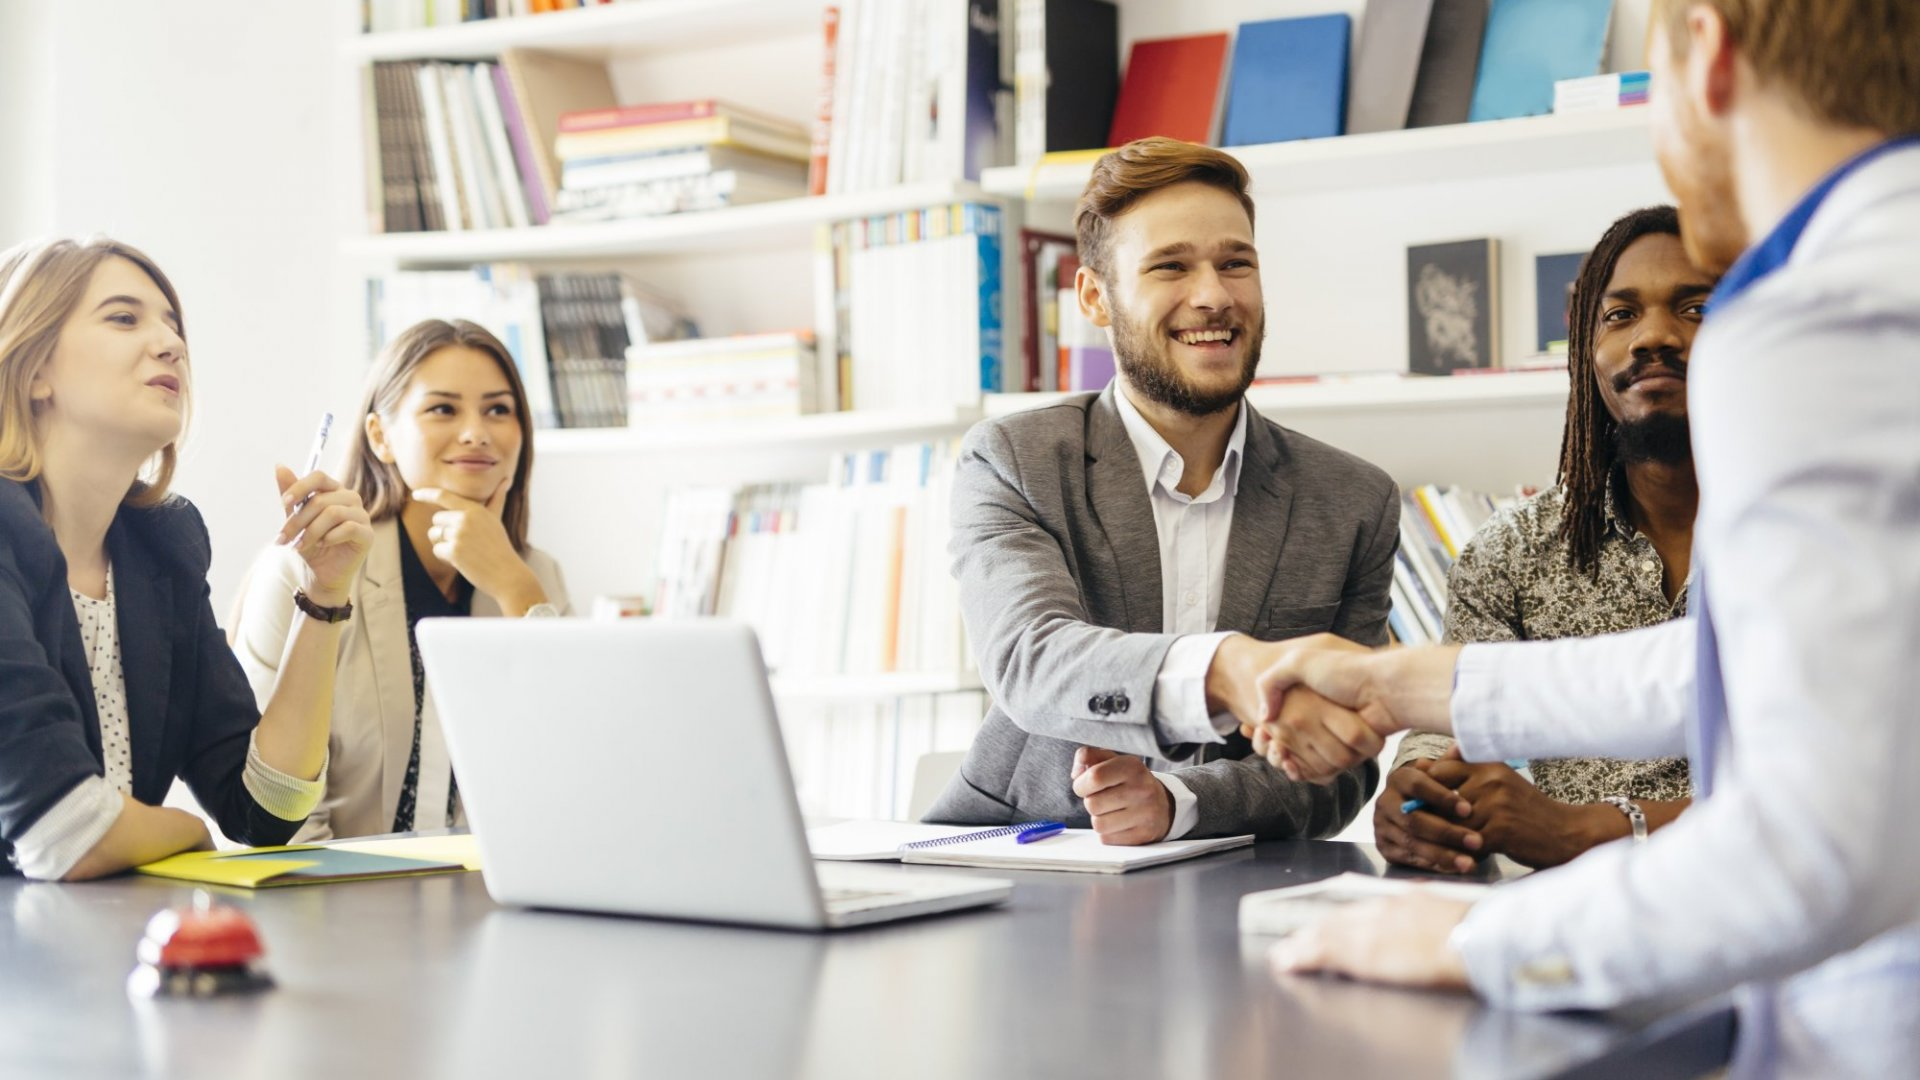 Leading the Meeting: 6 Tips to Commanding the Meeting Environment